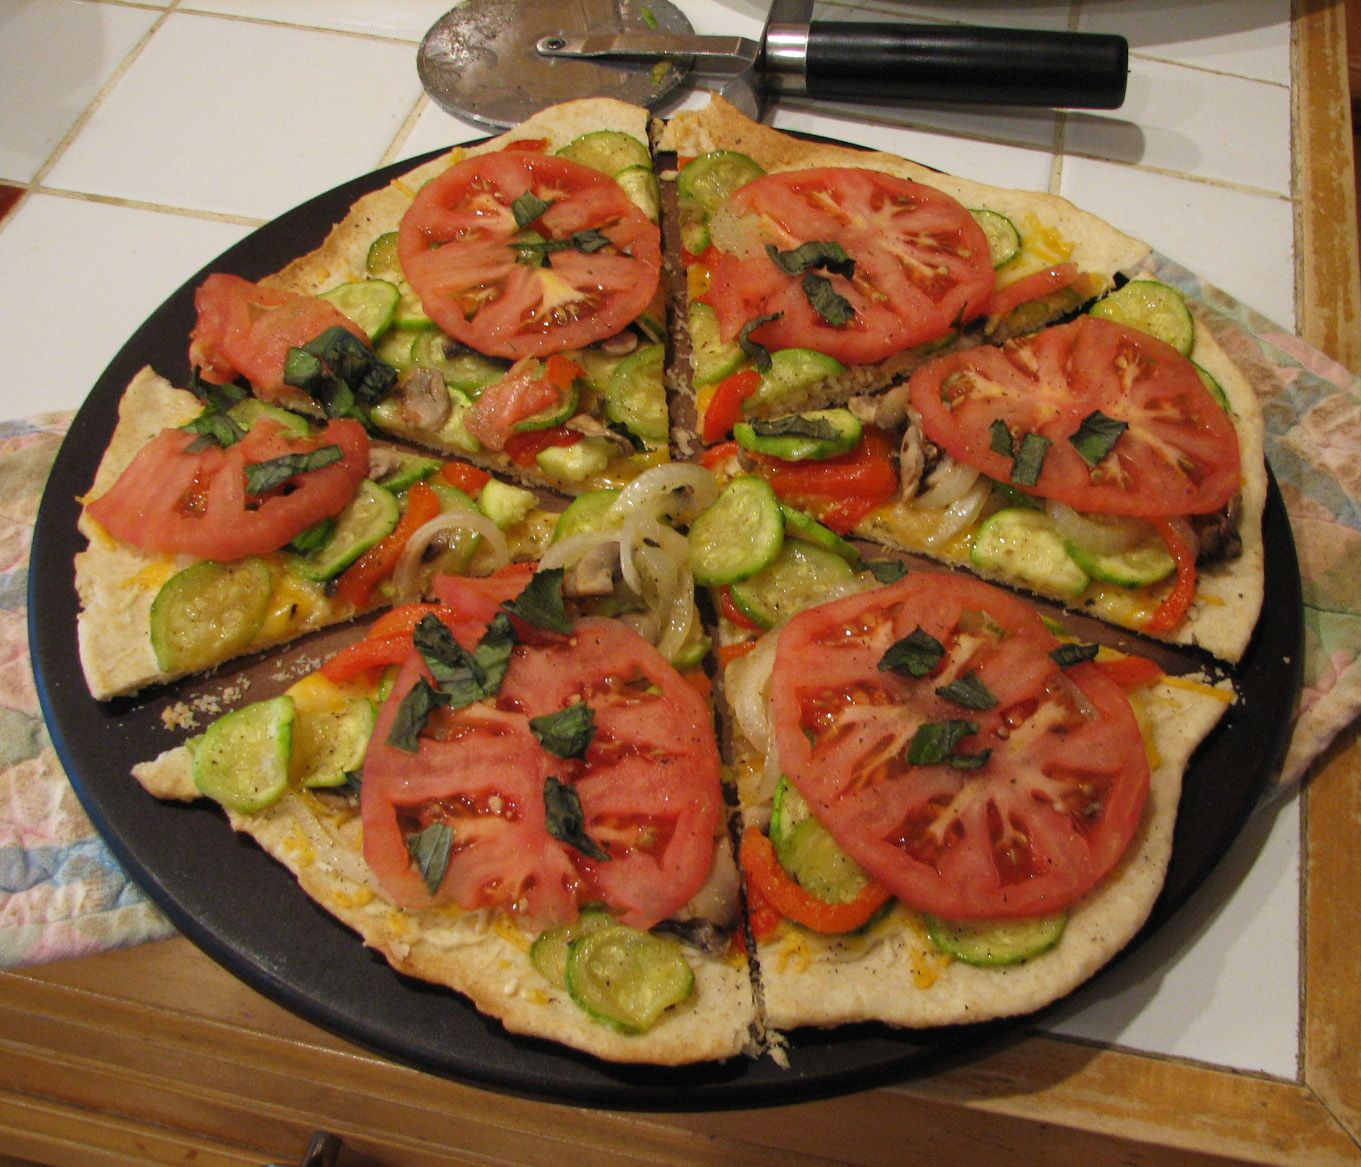 http://silvahayes.hubpages.com/hub/Flatbread-Homemade-Zucchini-Pizza